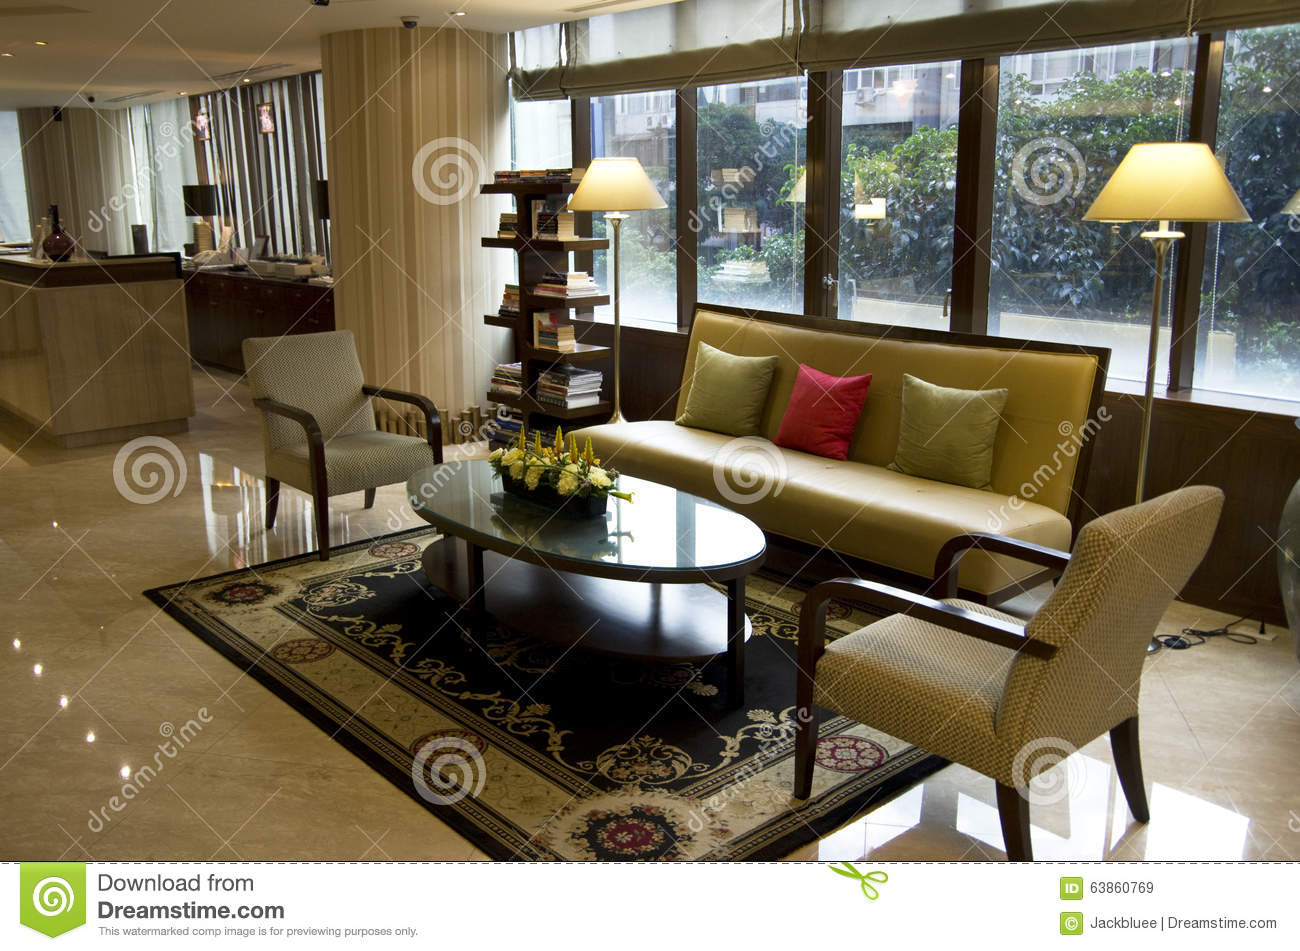 Small hotel lobby stock photo image 63860769 for Small great hotels